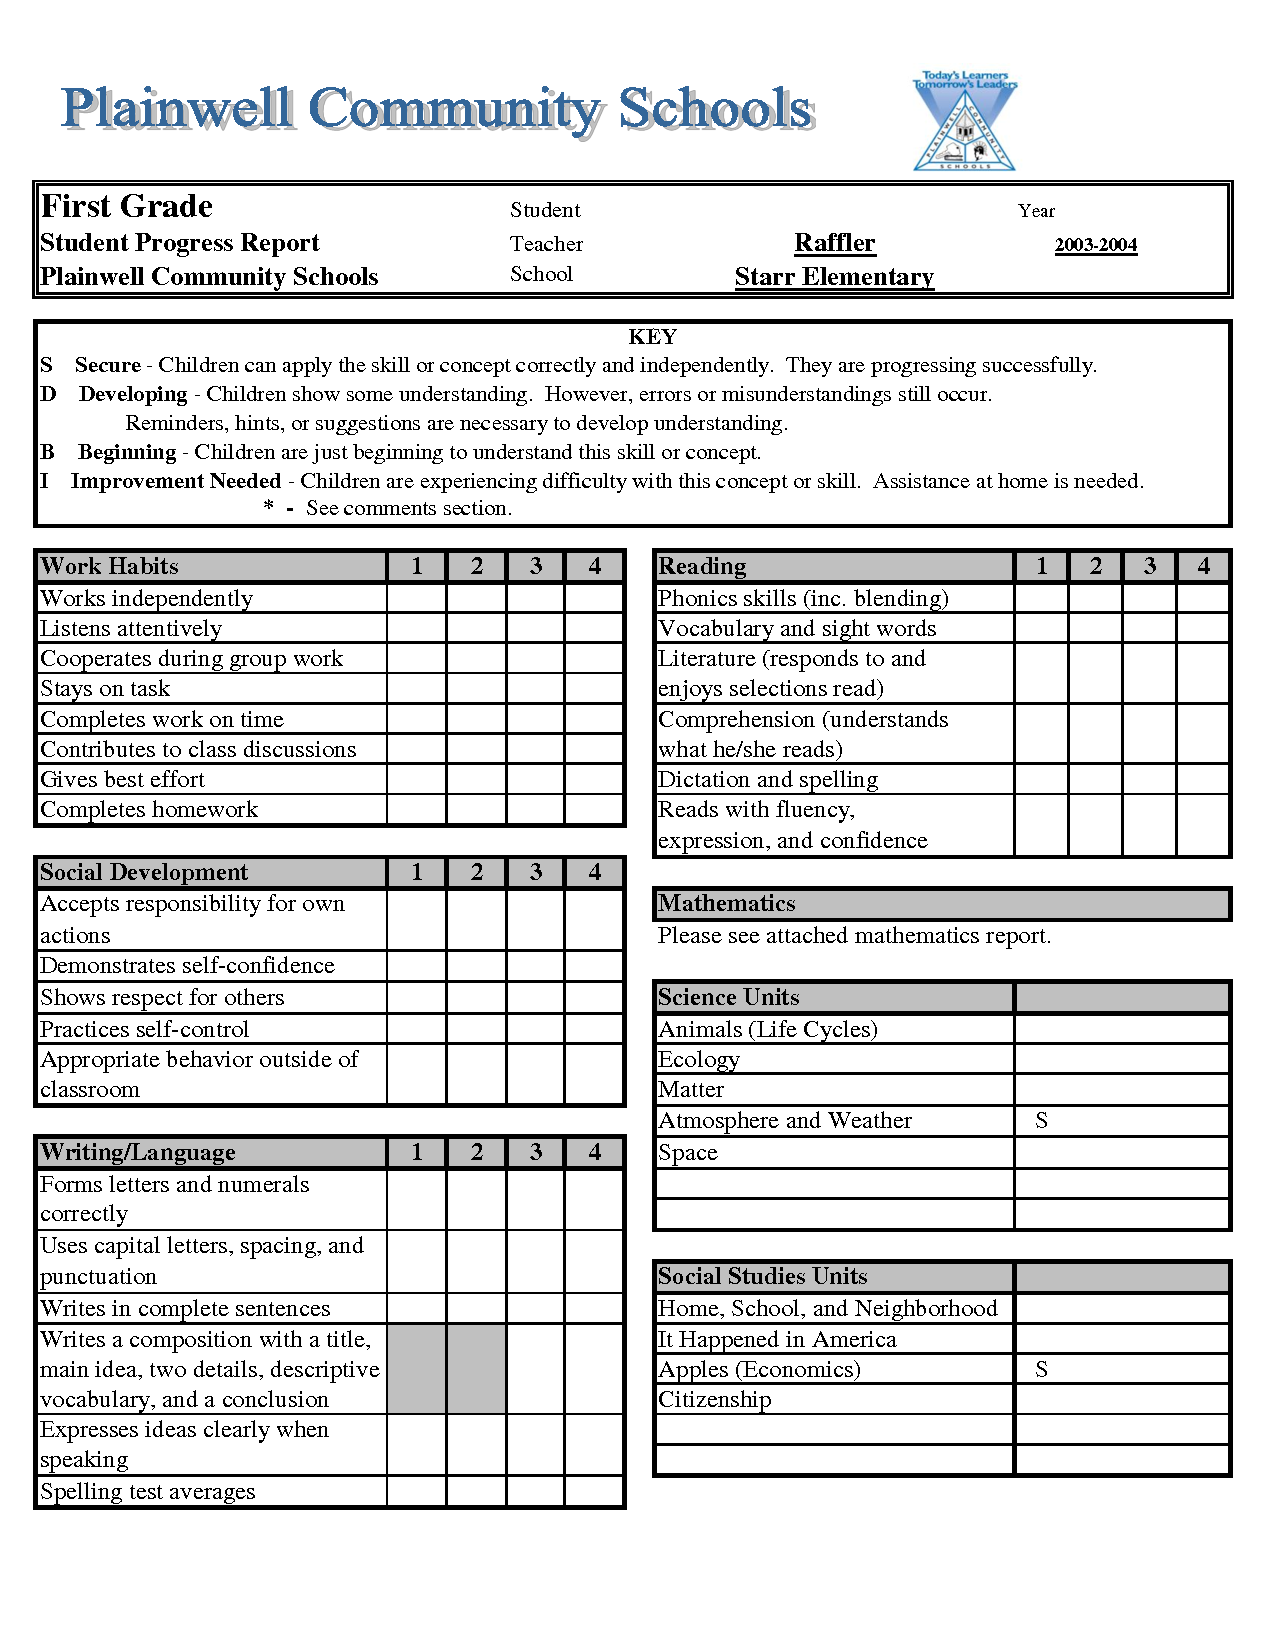 Report card template download legal documents for High school report card template word